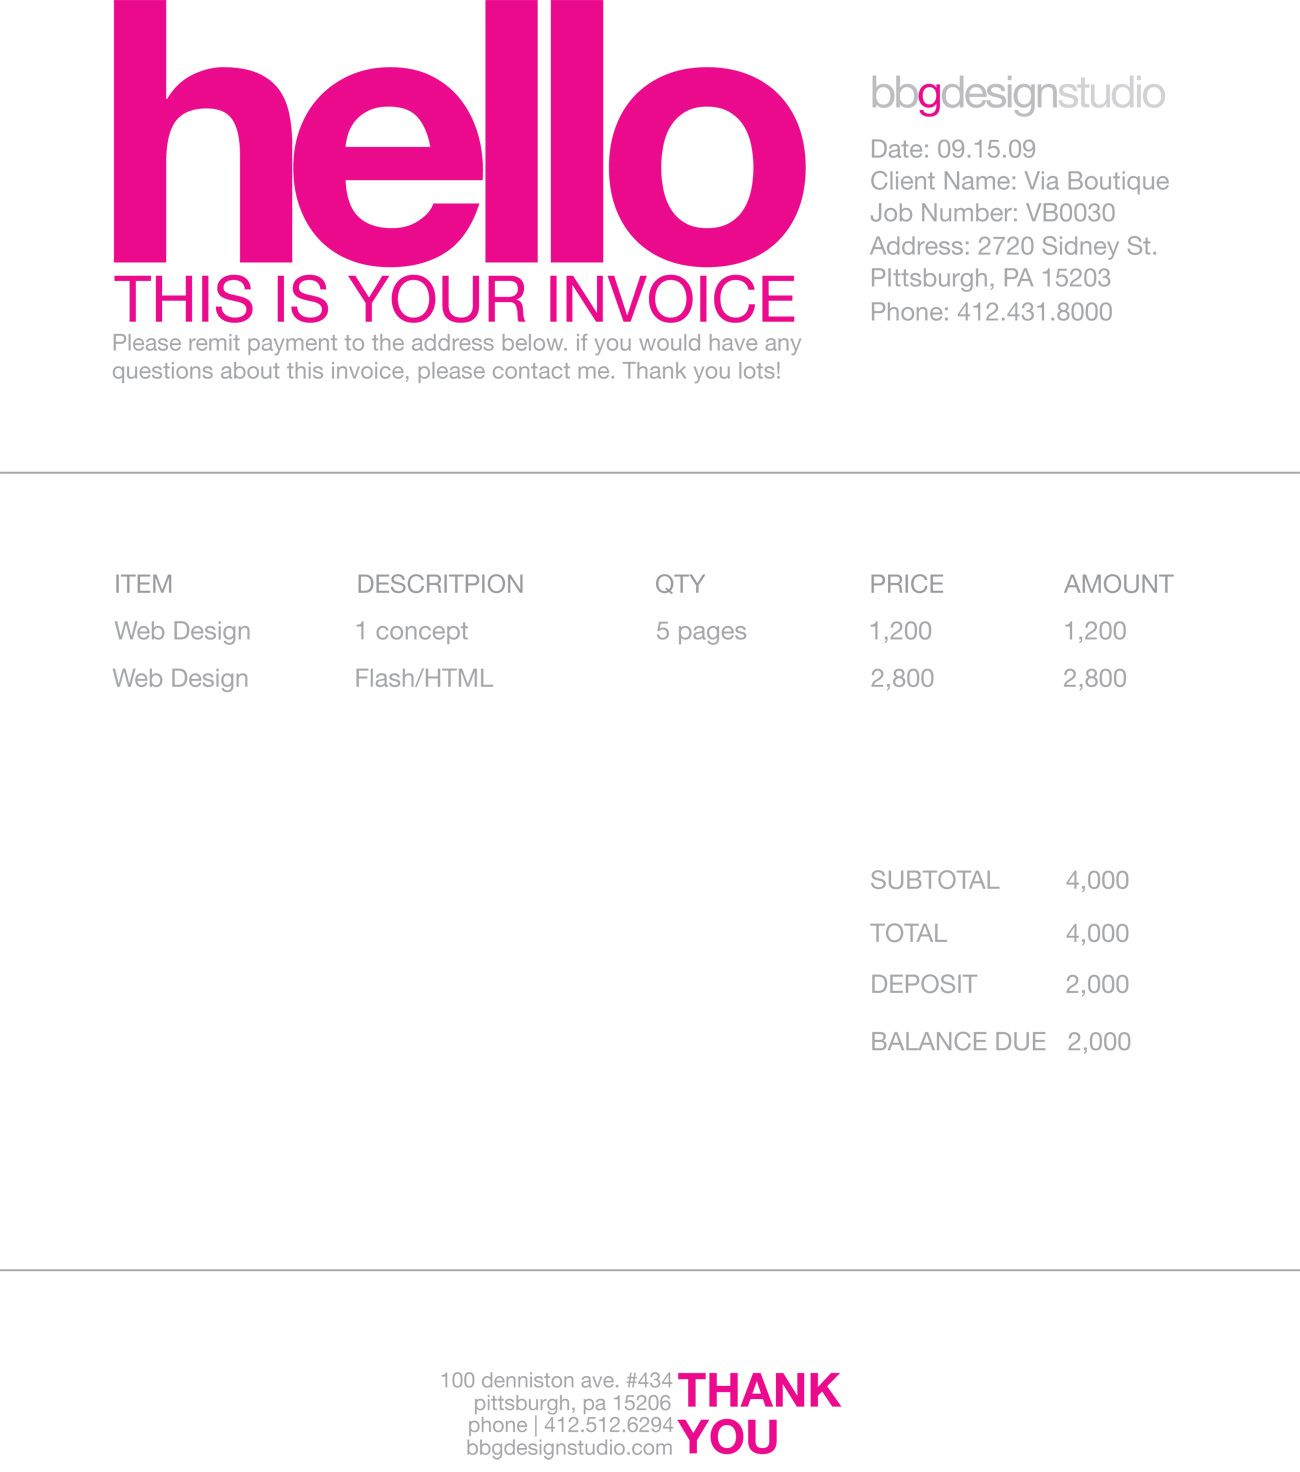 Gpwaus  Unique  Images About Invoice Design On Pinterest With Excellent Microsoft Invoice Besides Invoice Printer Furthermore Pay Fedex Invoice With Lovely Fedex Proforma Invoice Also Hvac Invoice Template In Addition Invoice Free Template And Invoice Means As Well As Auto Invoice Prices Additionally Make Invoice Online From Pinterestcom With Gpwaus  Excellent  Images About Invoice Design On Pinterest With Lovely Microsoft Invoice Besides Invoice Printer Furthermore Pay Fedex Invoice And Unique Fedex Proforma Invoice Also Hvac Invoice Template In Addition Invoice Free Template From Pinterestcom